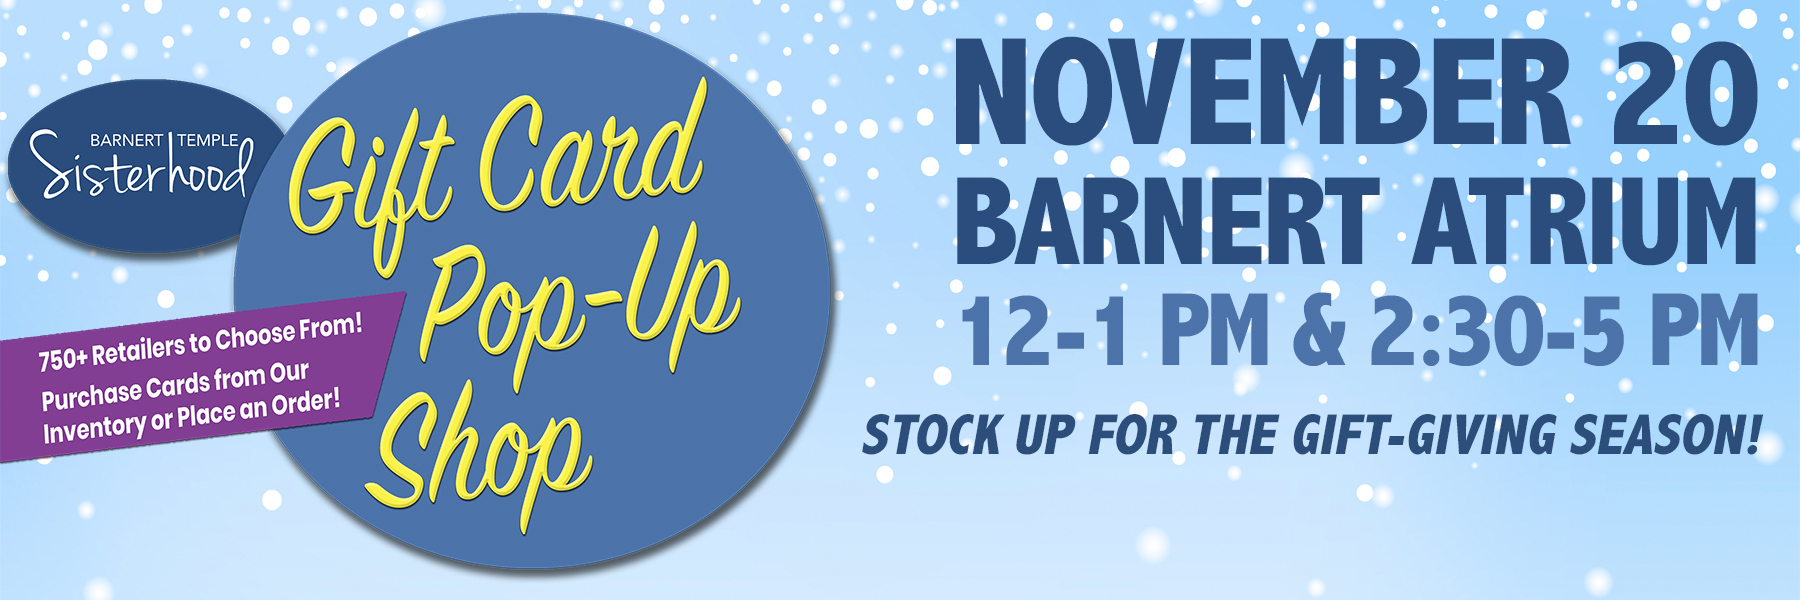 """<a href=""""https://www.barnerttemple.org/event/gift-card-pop-up-shop.html""""                                     target="""""""">                                                                 <span class=""""slider_title"""">                                     Purchase Gift Cards & Stock Up for the Season                                </span>                                                                 </a>                                                                                                                                                                                       <span class=""""slider_description"""">Thanksgiving and the winter holiday season is fast approaching.  Stock up on gift cards to cover all of your shopping and gift-giving needs.  A percentage of each gift card supports Sisterhood.  It's a win-win!  Click above for details.</span>"""